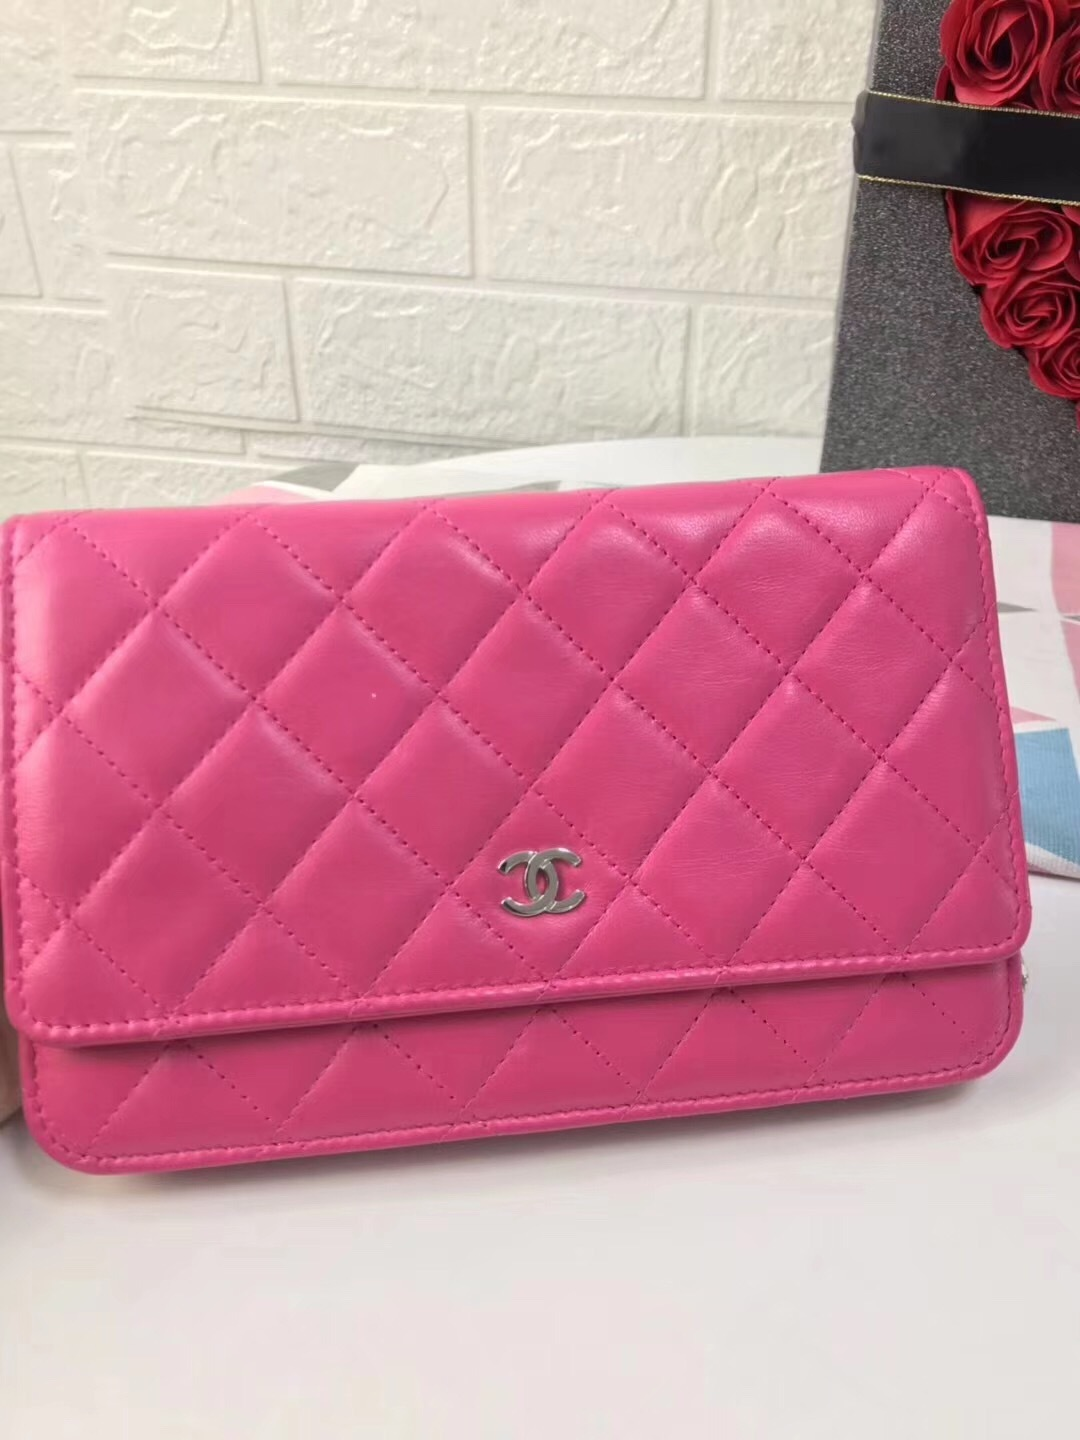 100% AUTH CHANEL WOC Quilted Lambskin PINK Wallet on Chain Flap Bag SHW image 2